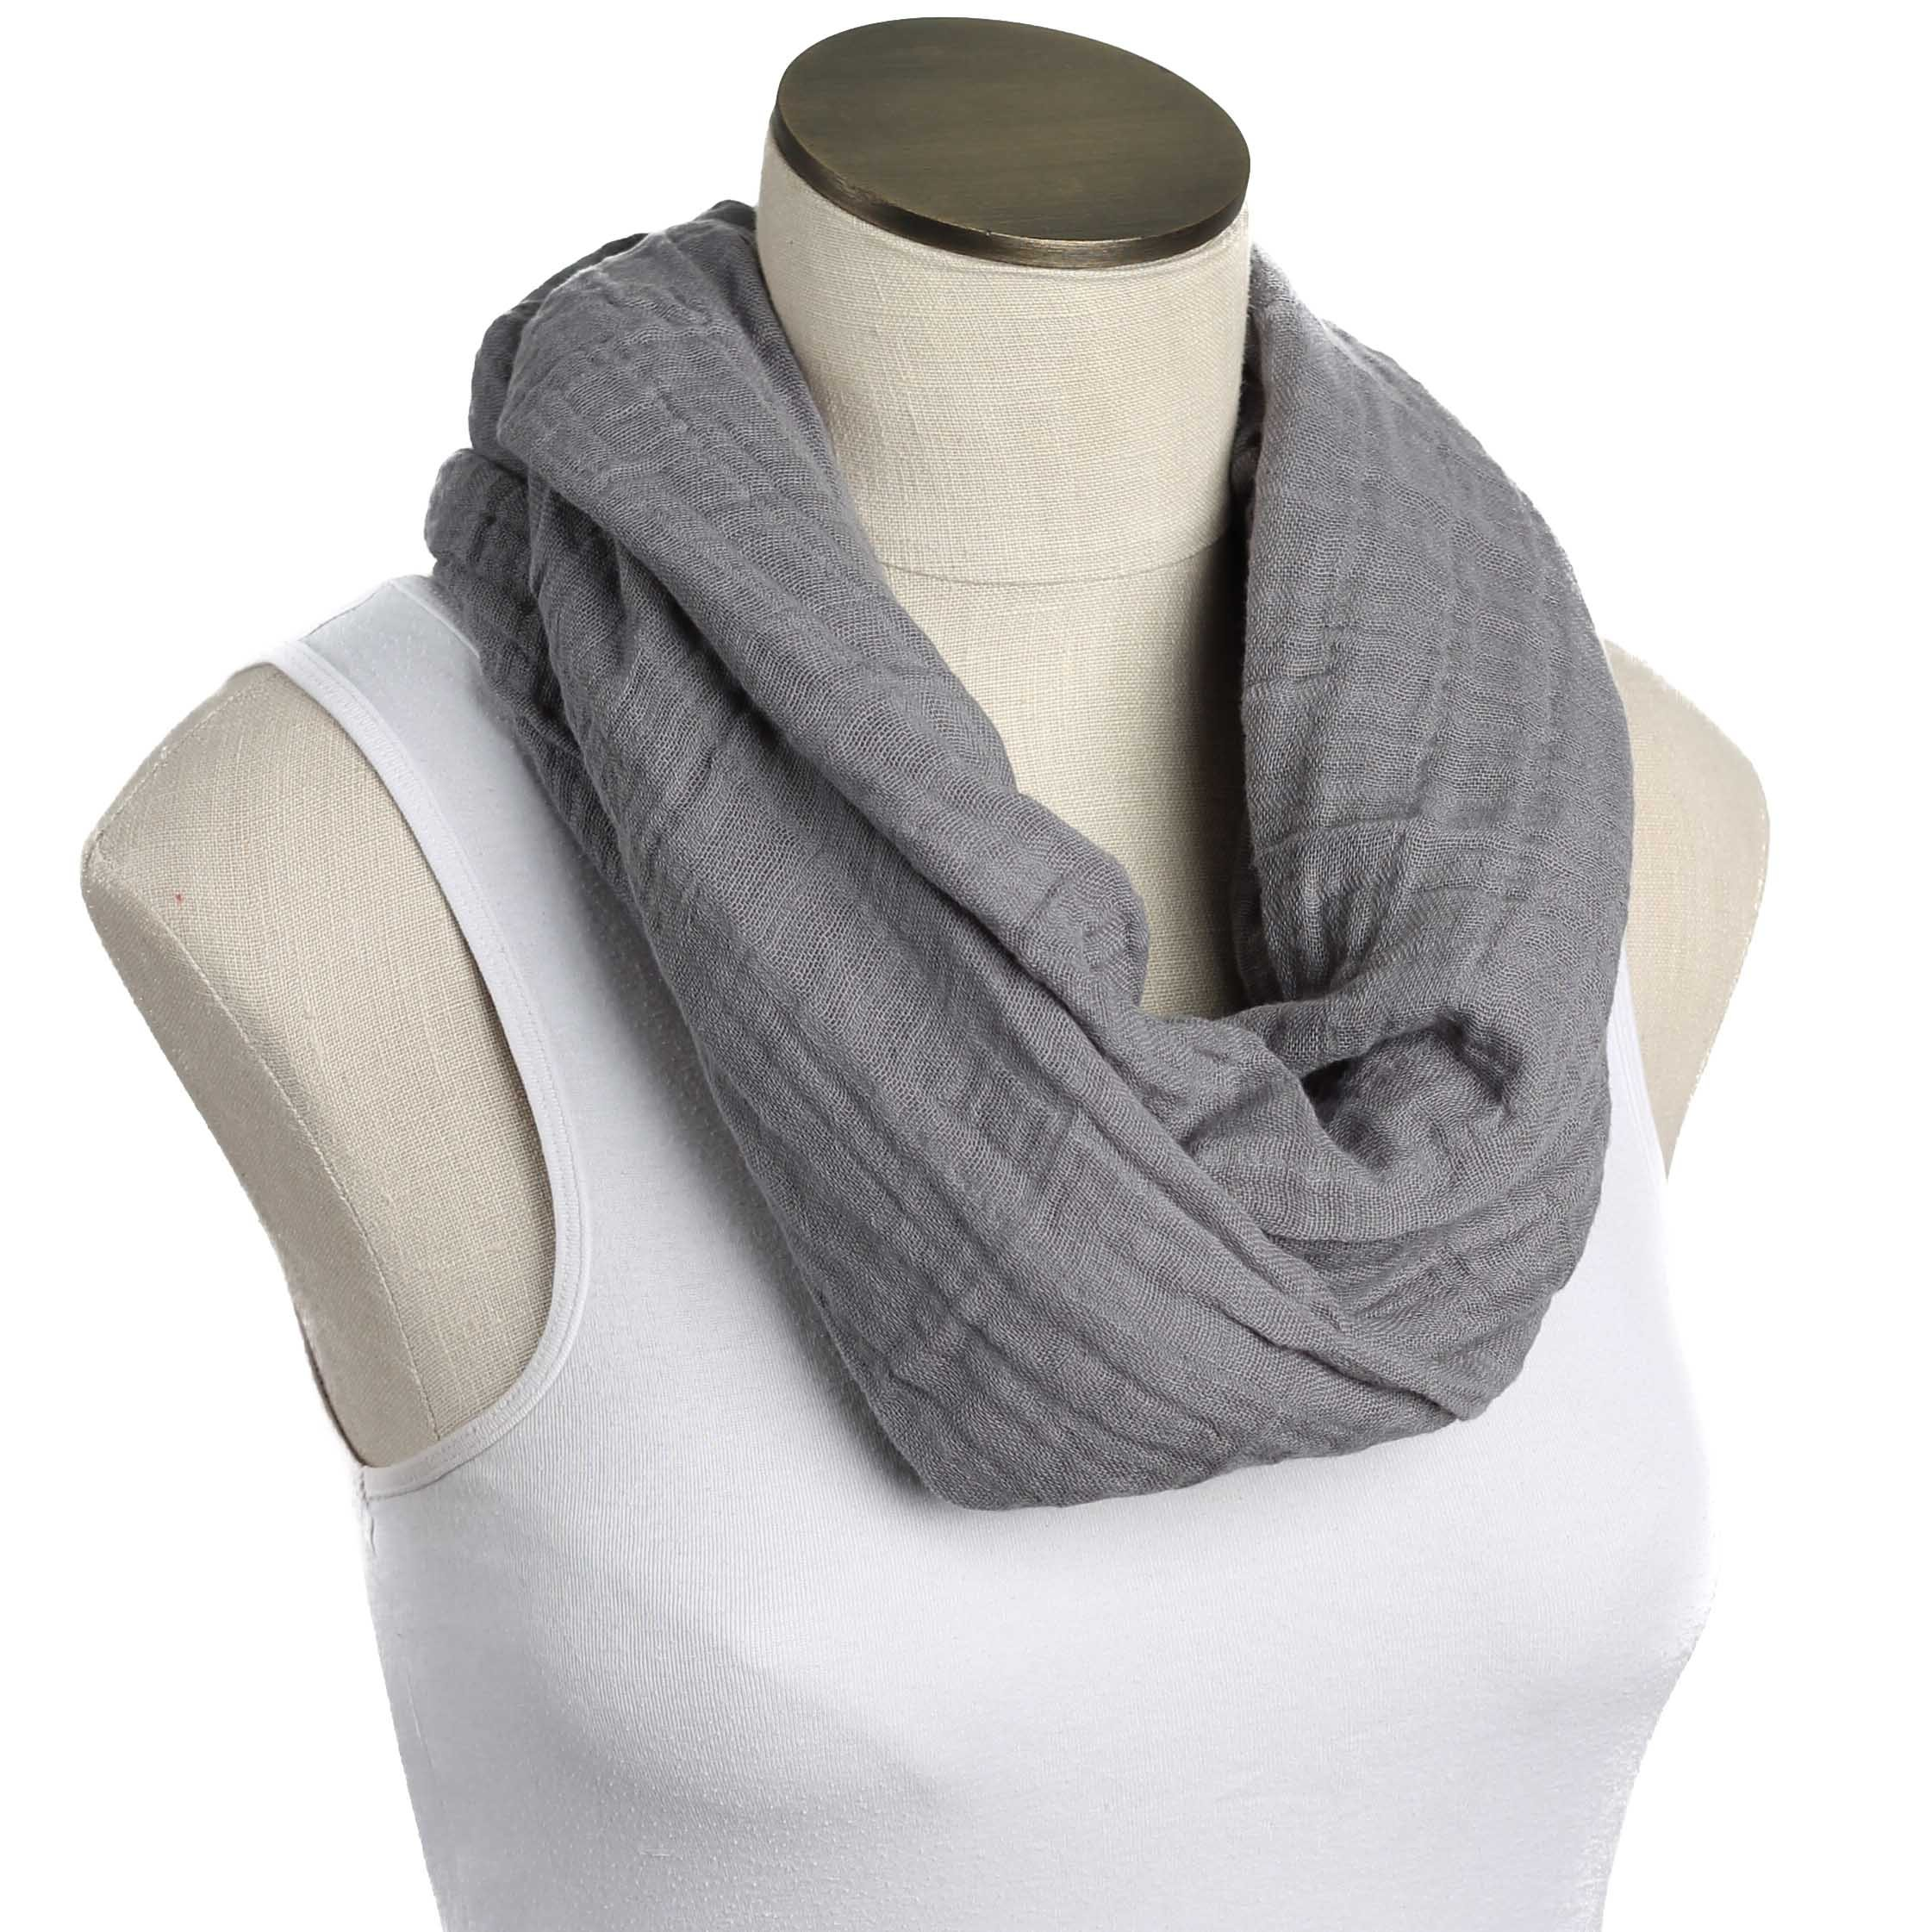 --SALE--Hold Me Close Muslin Double Gauze Nursing Scarf (Solid Graphite) by Hold Me Close